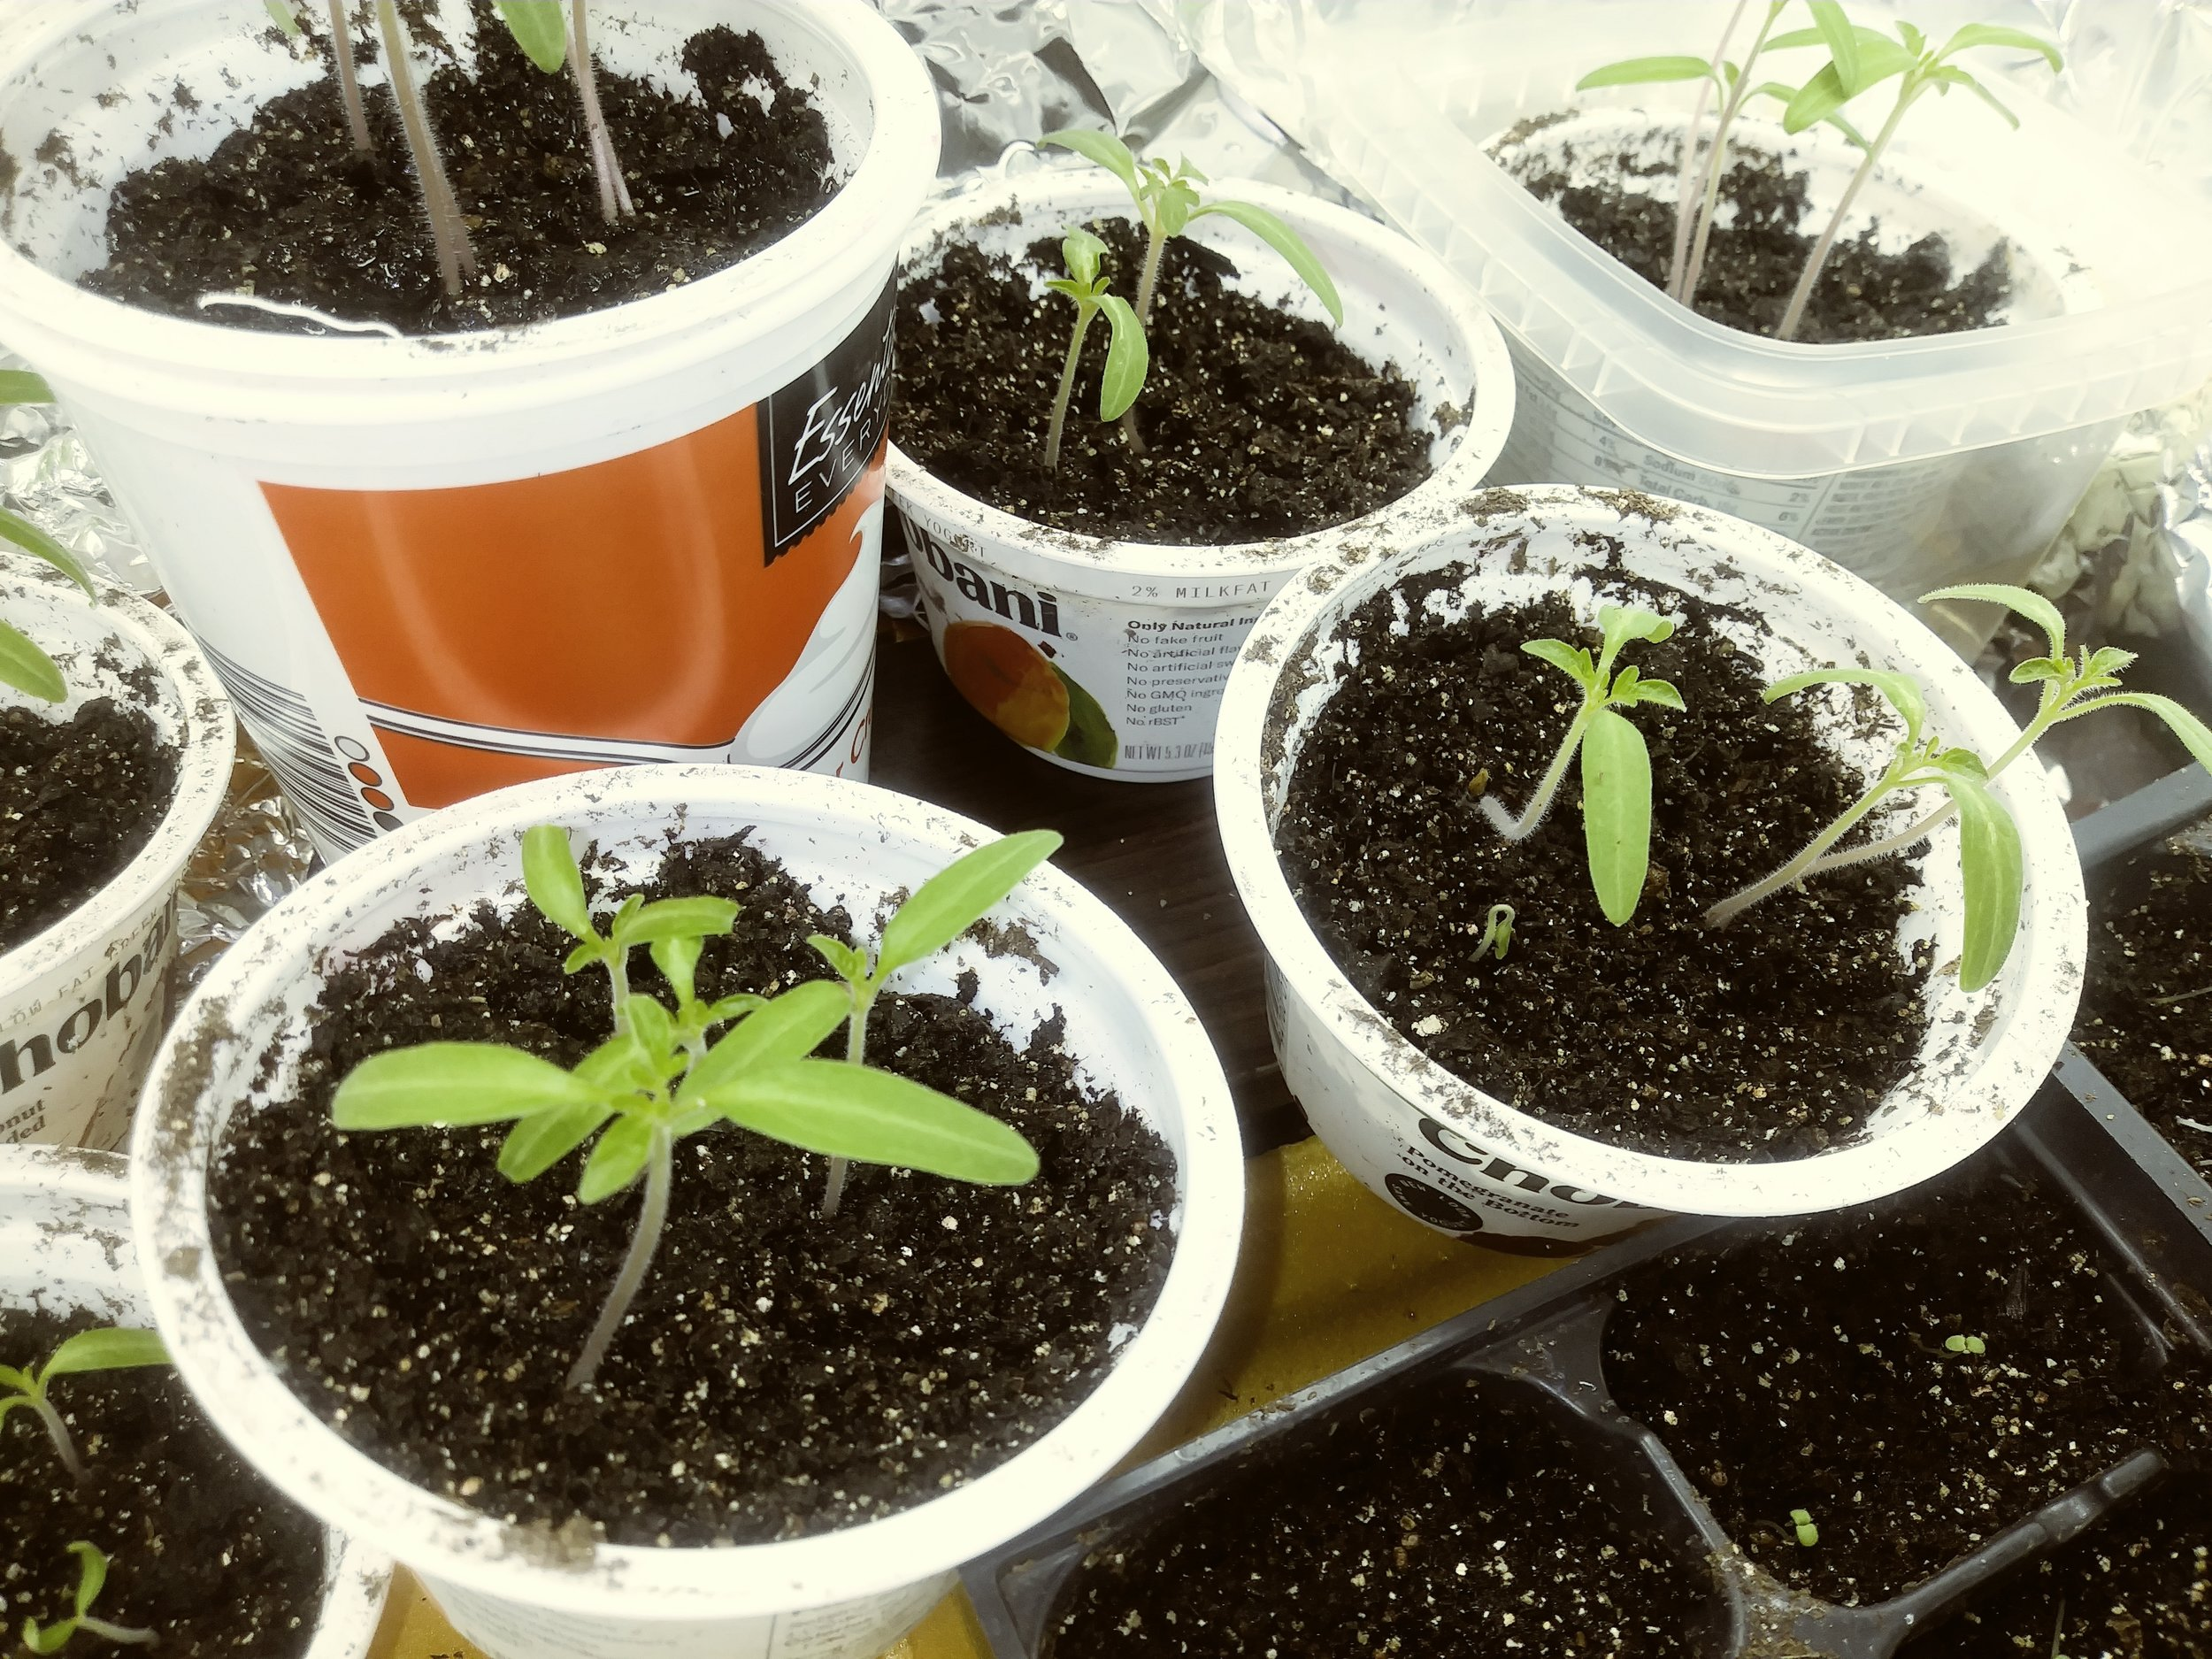 seedlings_in_yogurt_cups.jpg